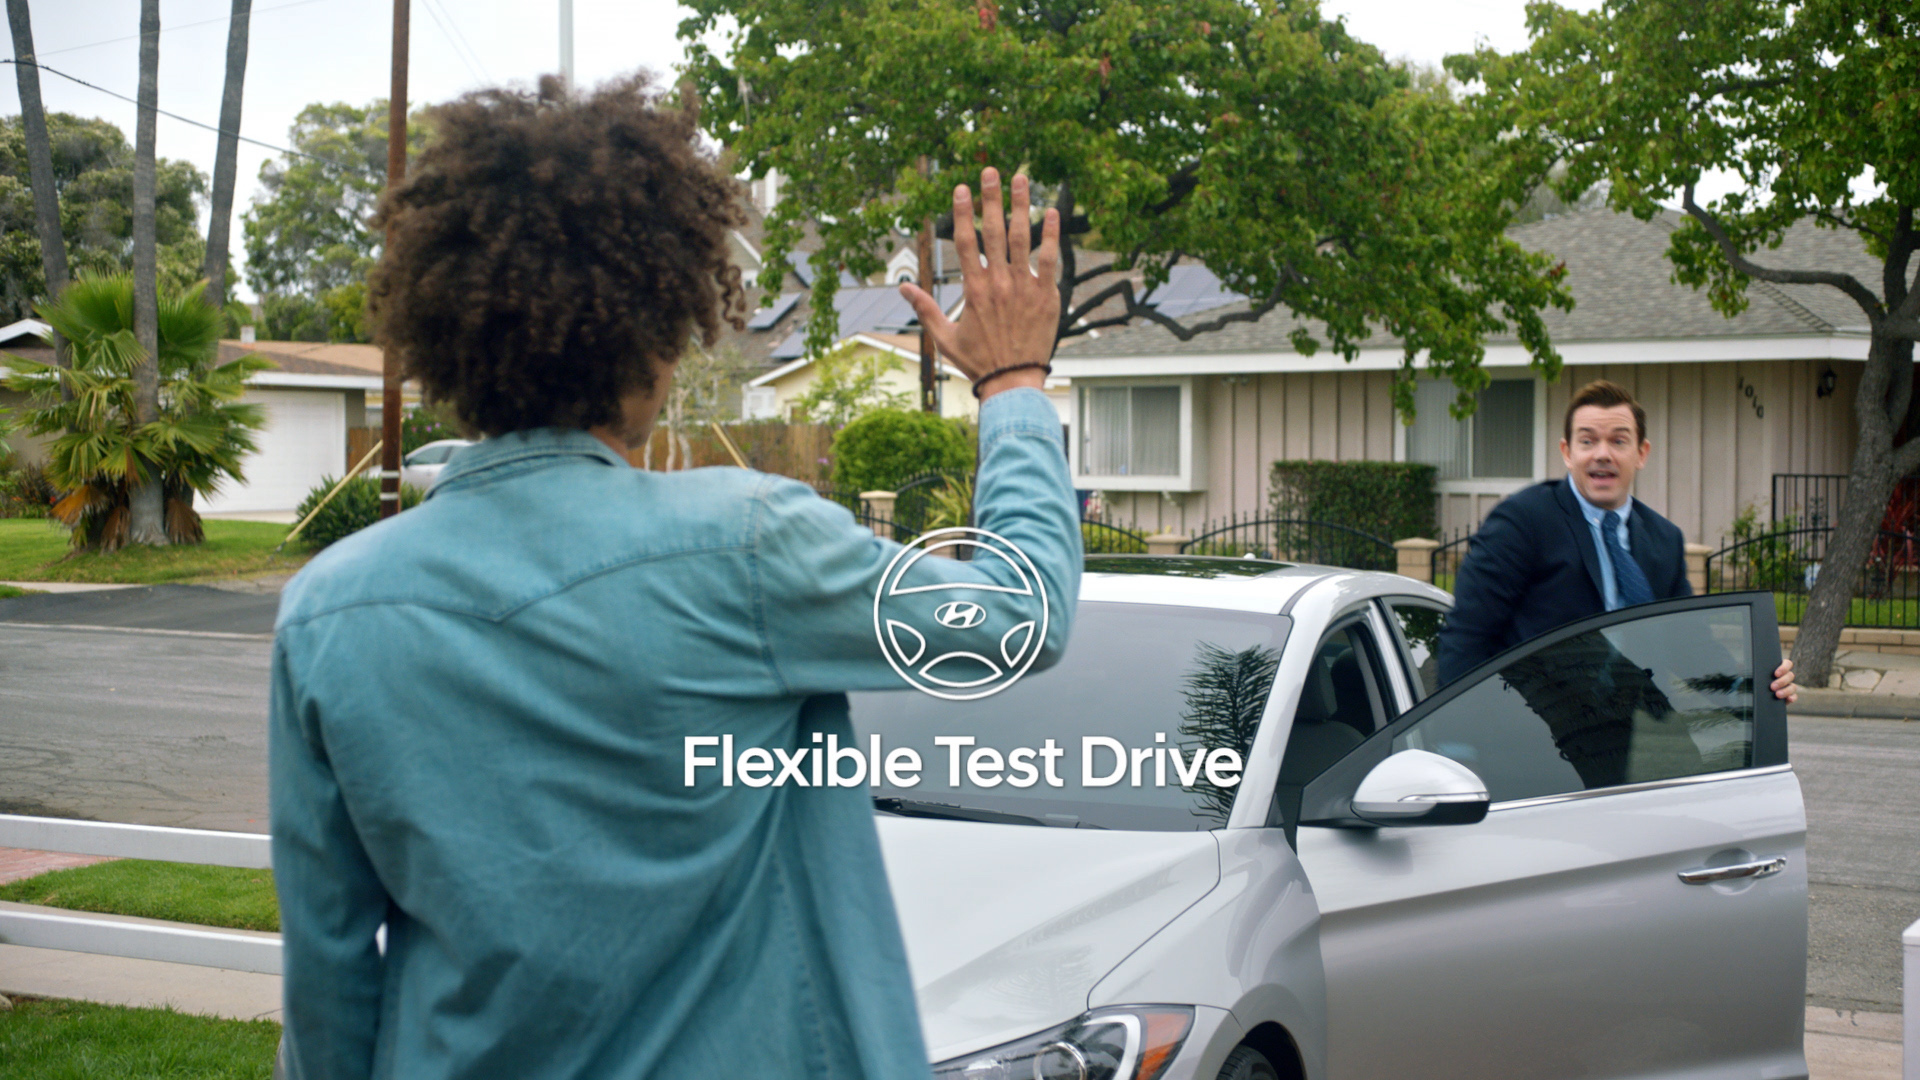 CUSTOMERS ARE GIVEN THE OPTION TO CONDUCT A TEST DRIVE FOR ANY NEW VEHICLE ON THEIR OWN TERMS THROUGH HYUNDAI DRIVE.